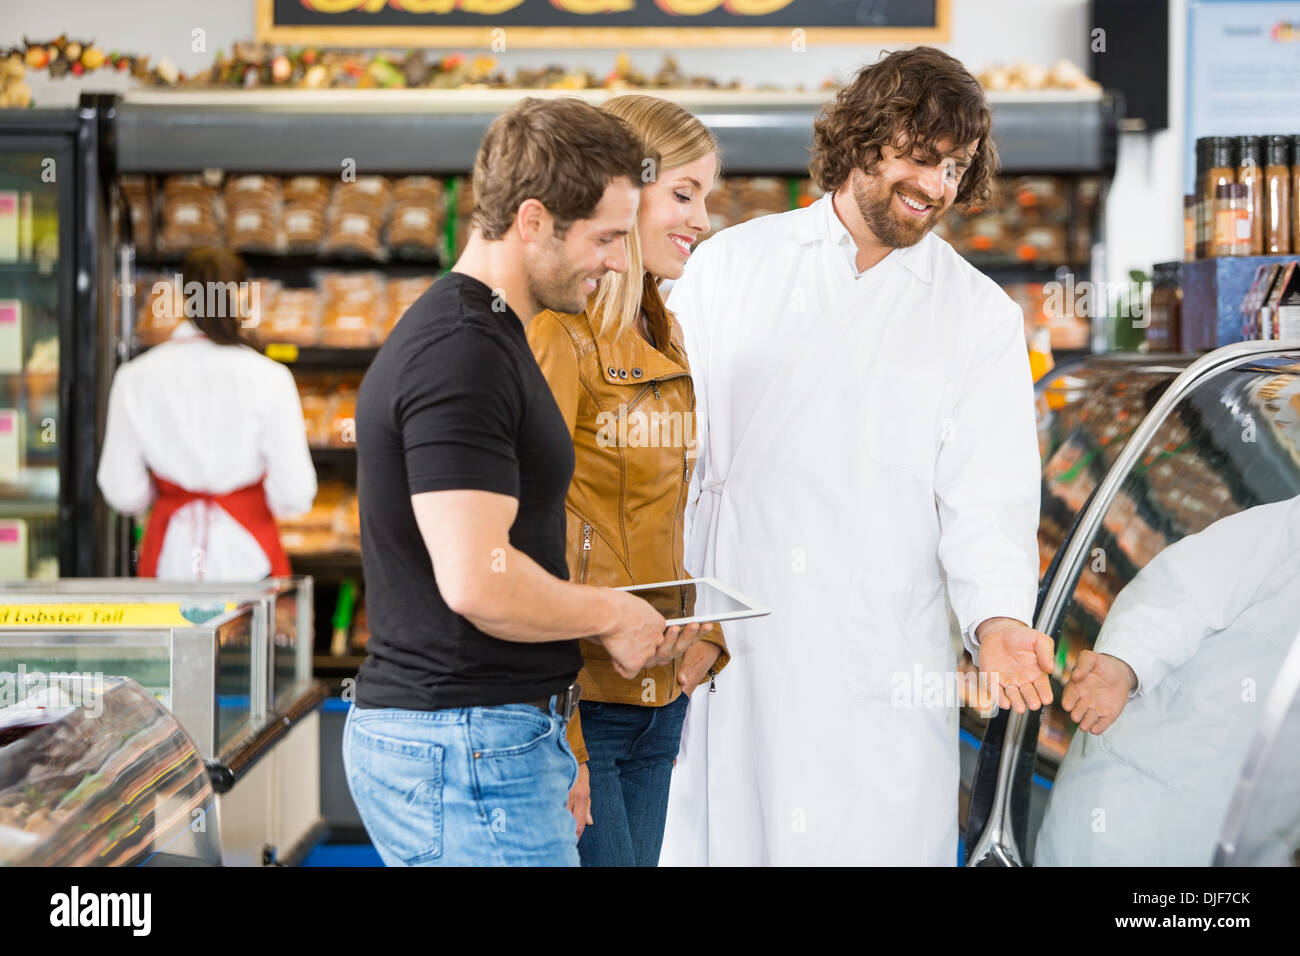 Salesman Assisting Couple In Buying Meat - Stock Image